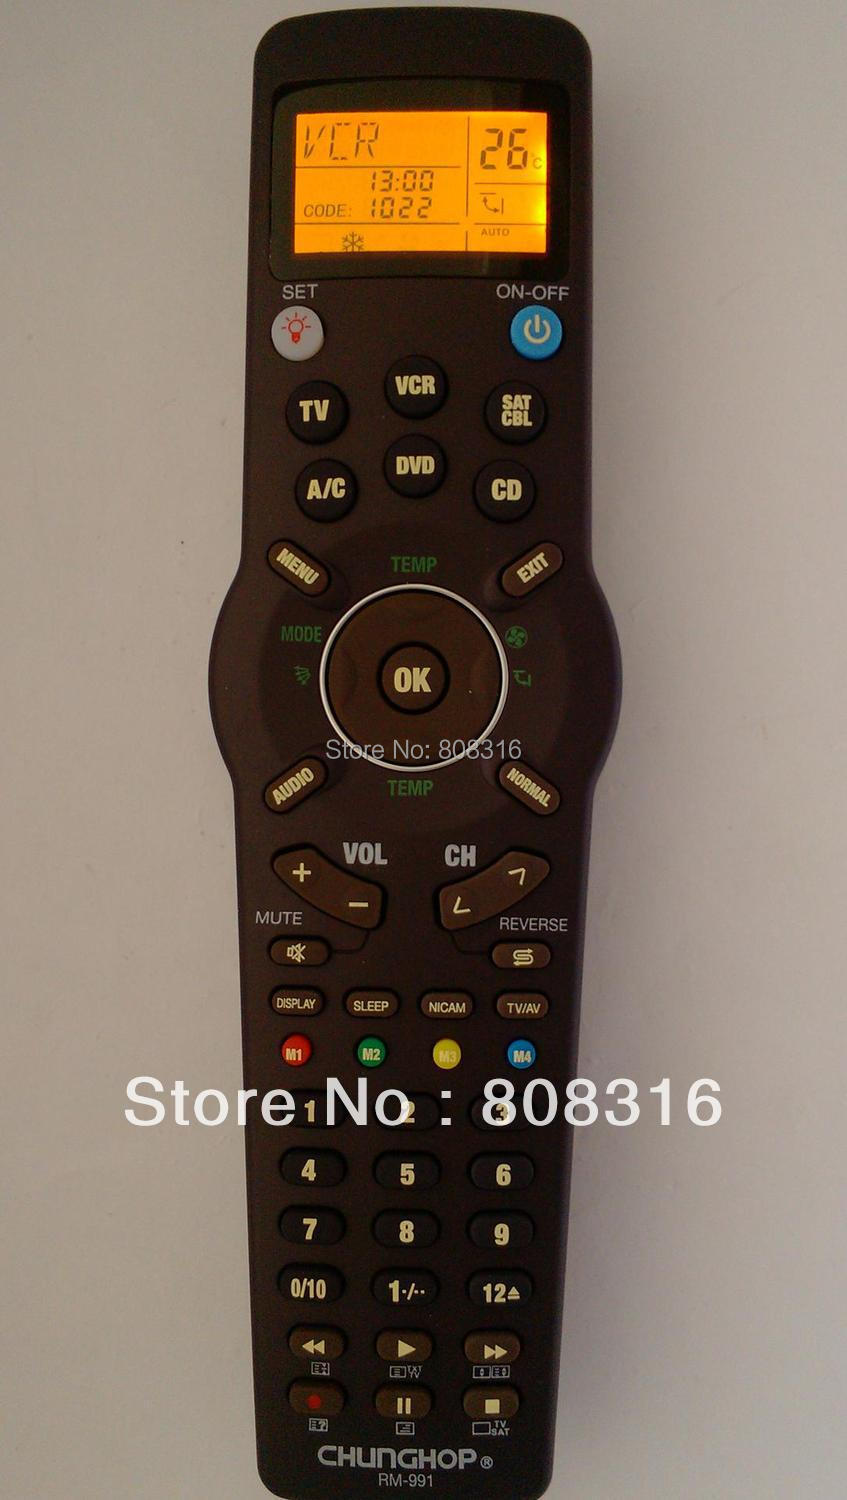 Freeshipping wholesale Chunghop RM-991 TV/SAT/DVD/CBL/CD/AC/VCR universal remote control learning for 6 nets in 1 equipment(China (Mainland))